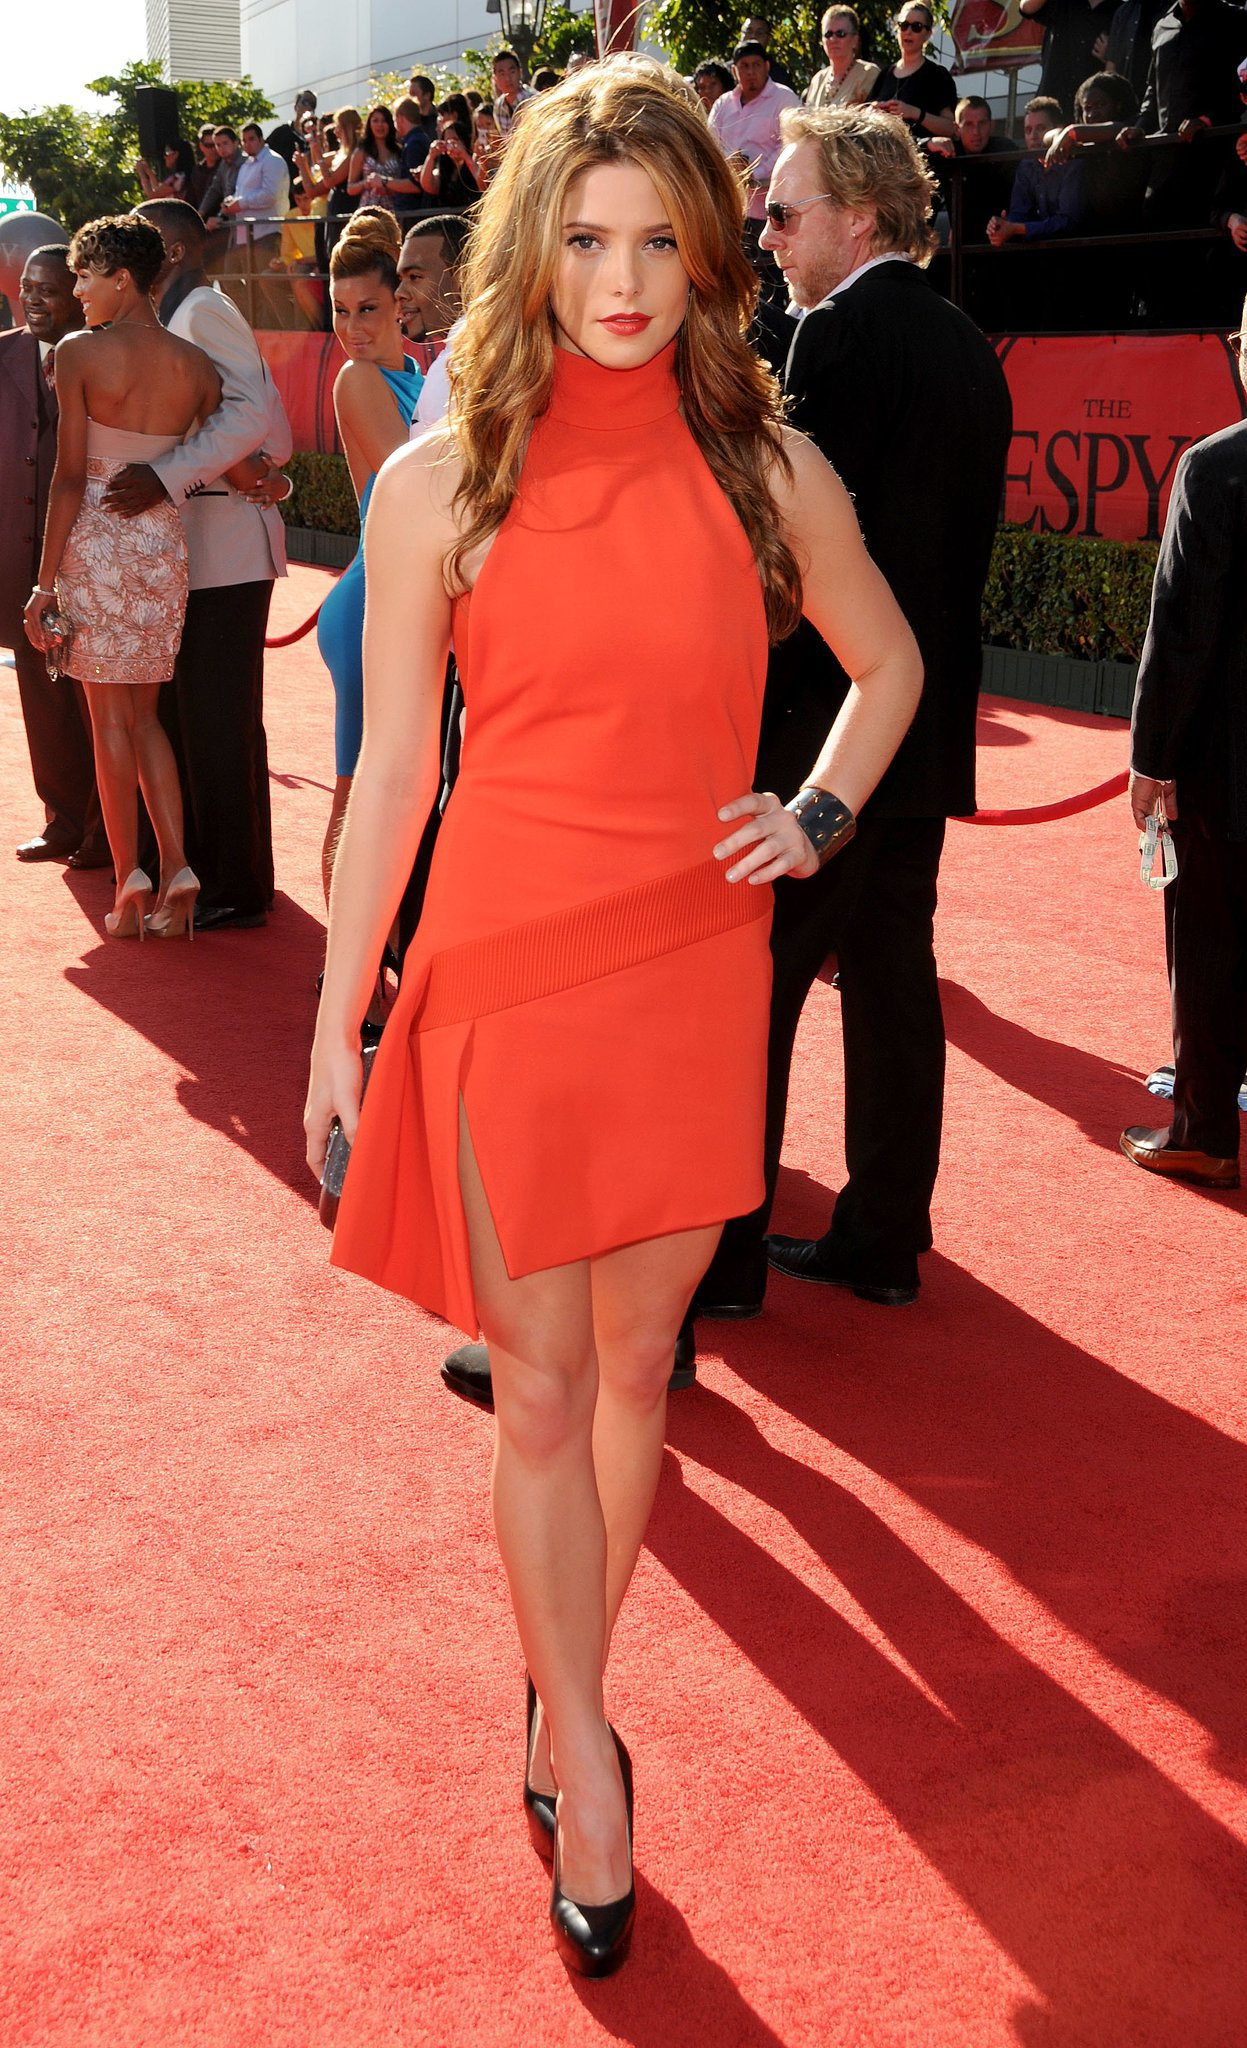 Ashley smoldered in a red-hot Versace dress at the 2010 Espy Awards.